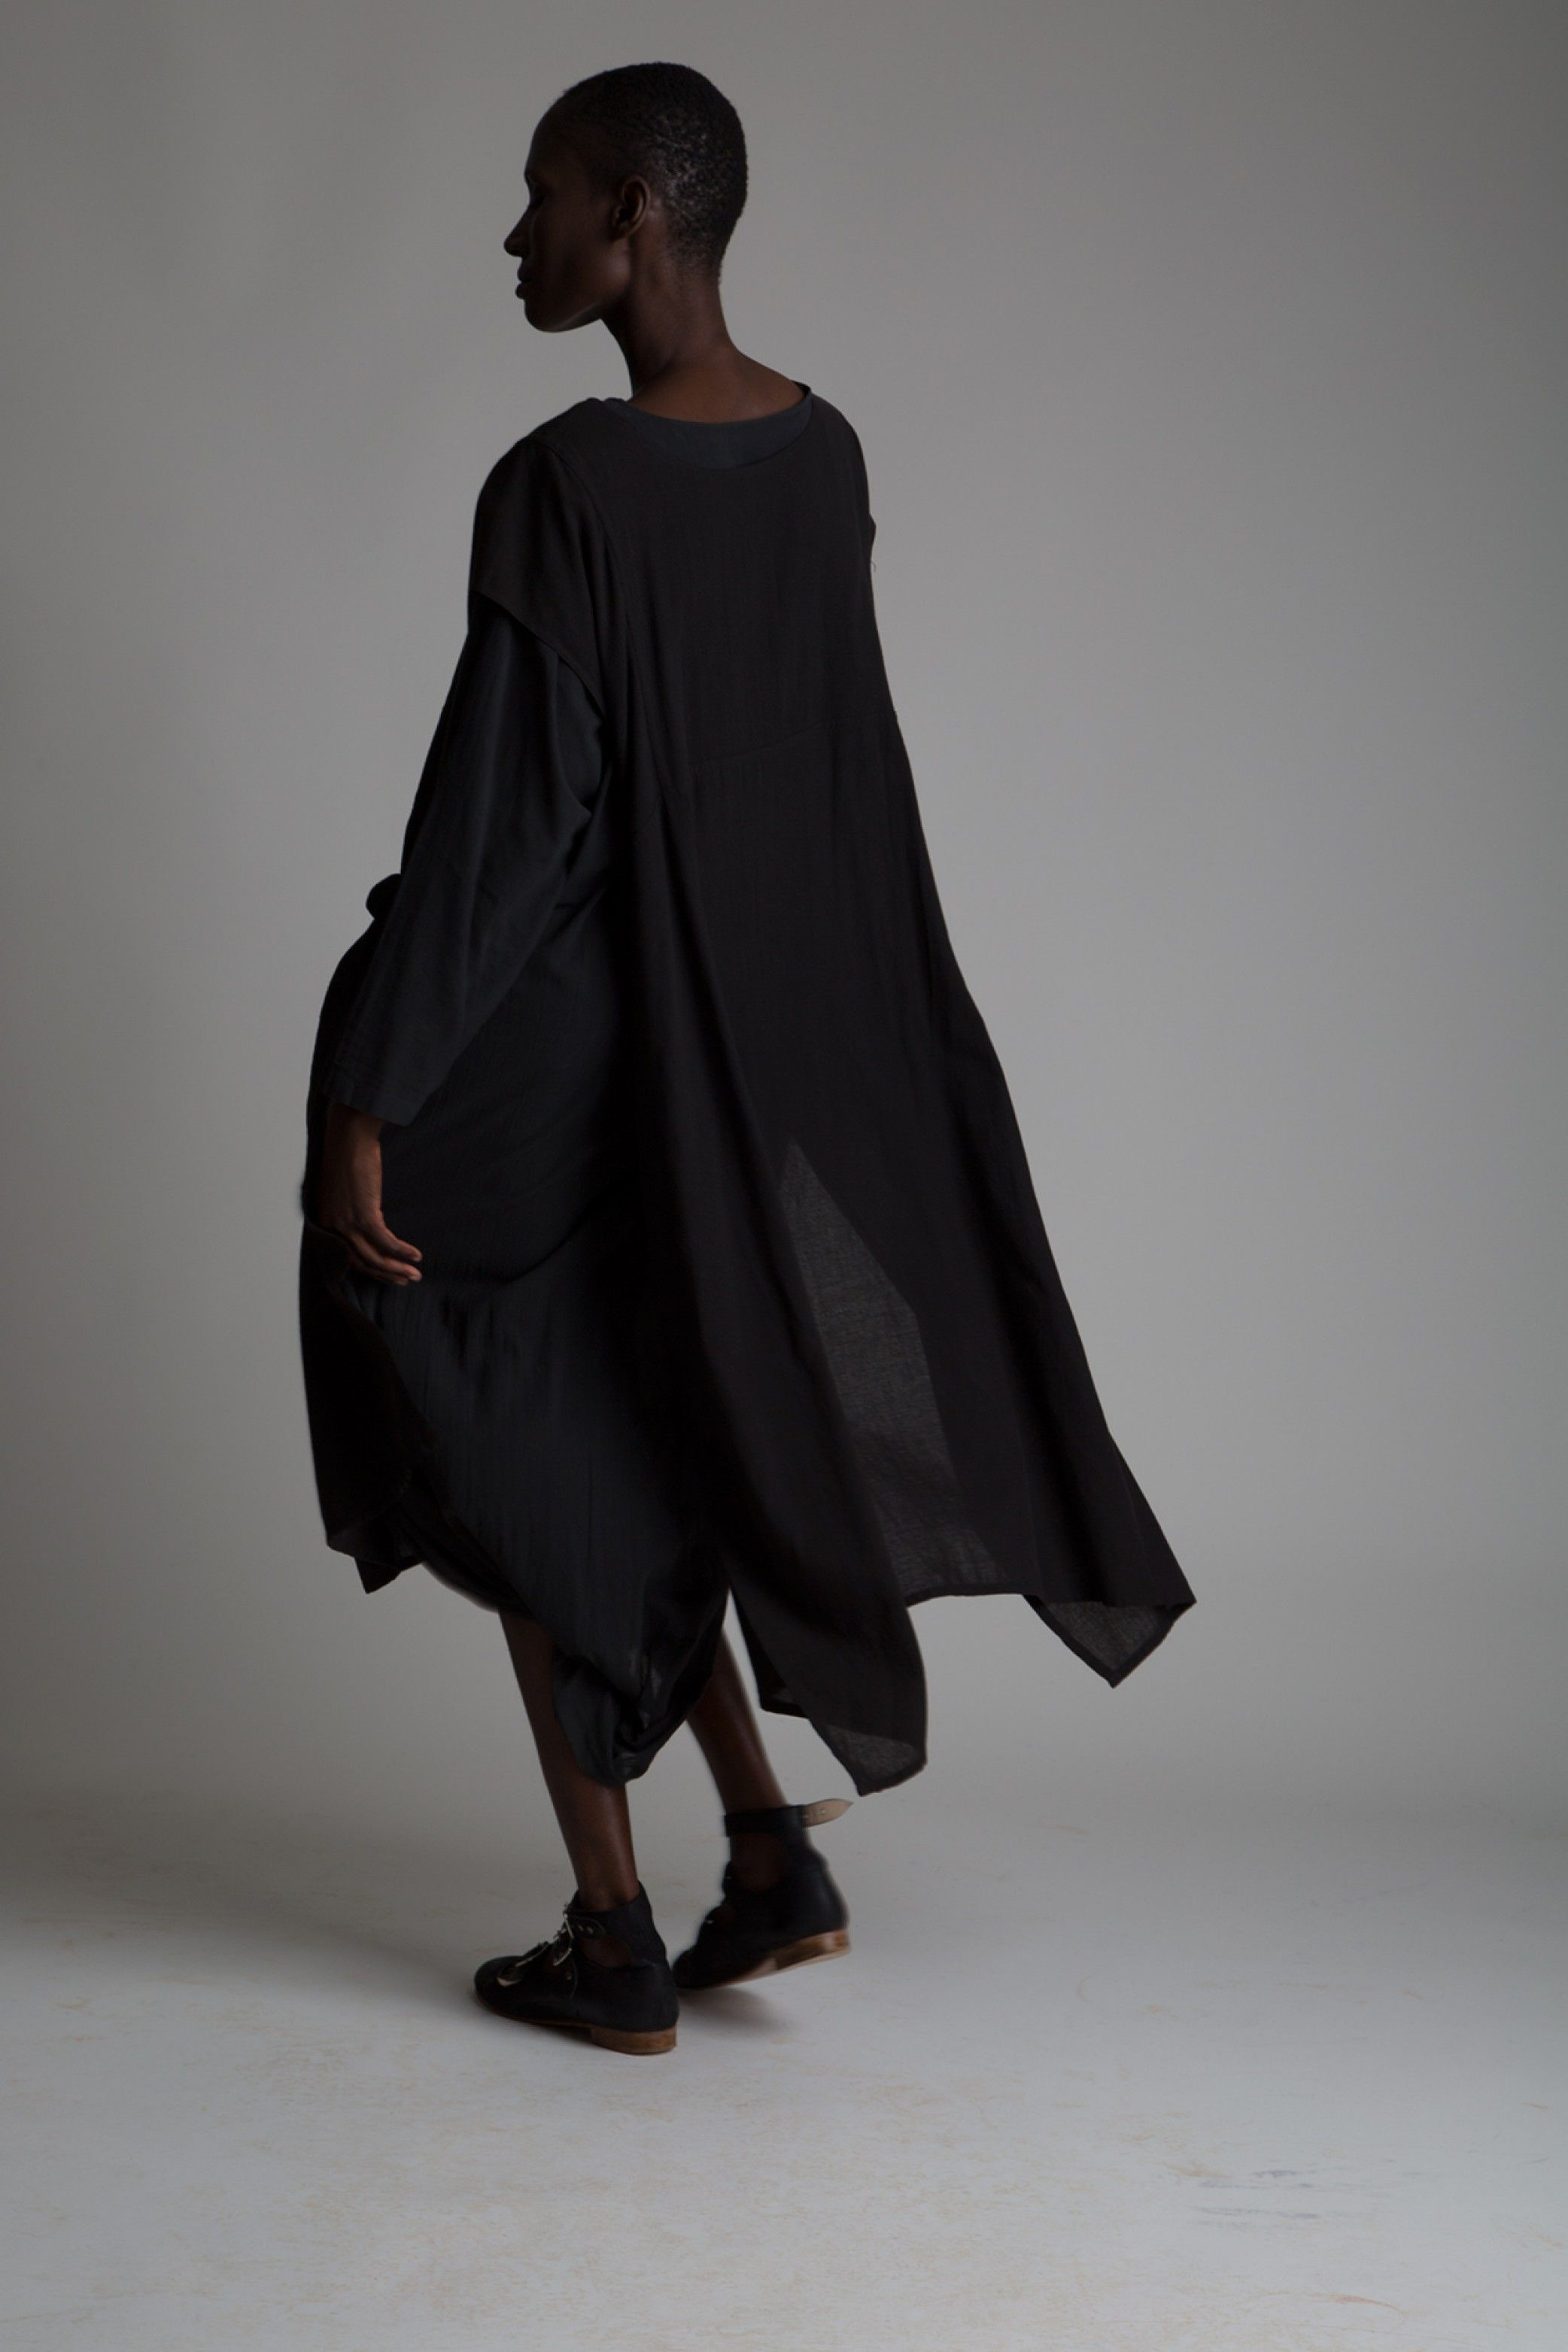 Clothing By Baking It In An Oven By Issey Miyake: Vintage Issey Miyake Plantation Dress